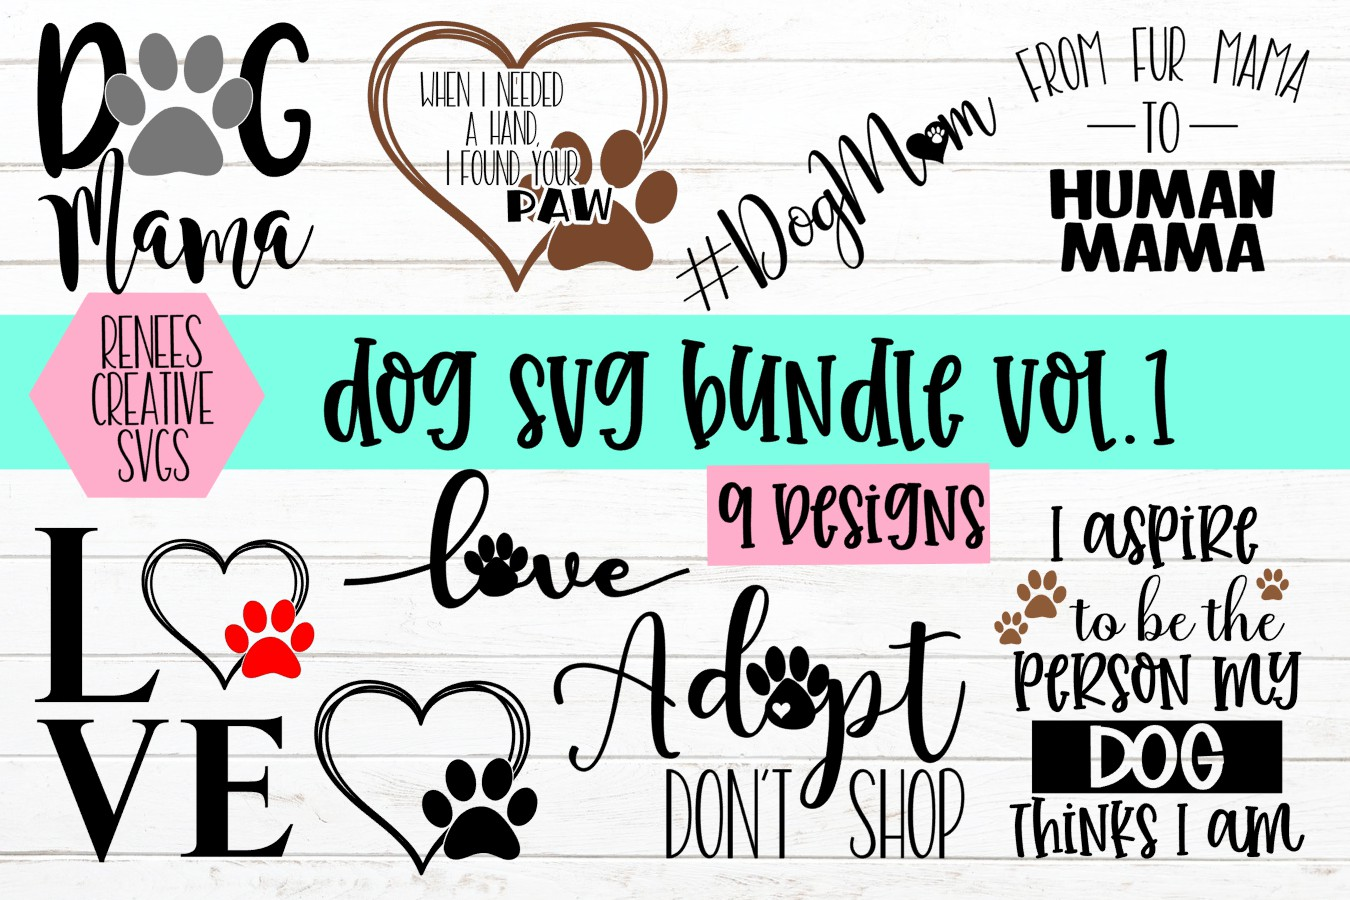 Download Free Dog Bundle Vol 1 Graphic By Reneescreativesvgs Creative Fabrica for Cricut Explore, Silhouette and other cutting machines.